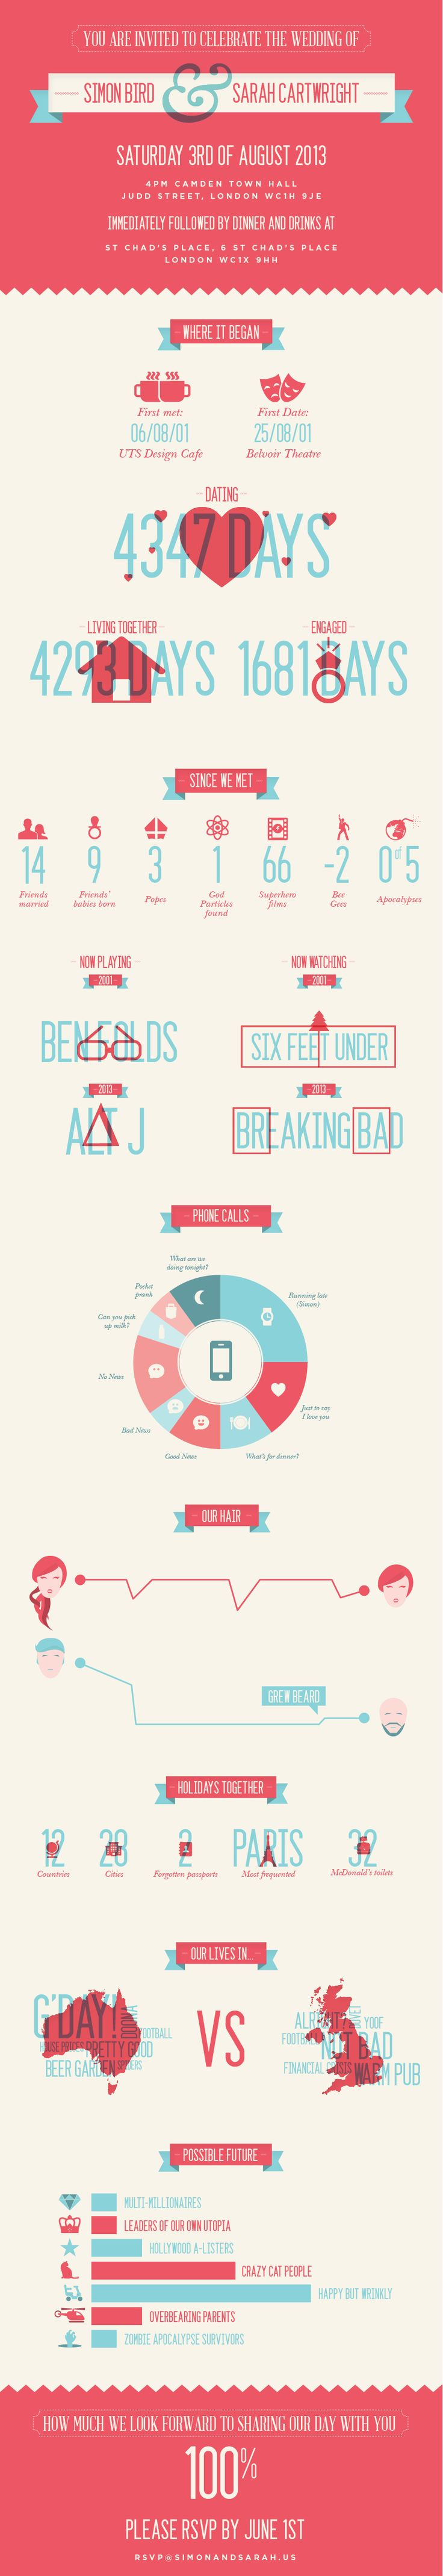 Awesome wedding invitation in the style of an infographic, #design & #typography are amazing